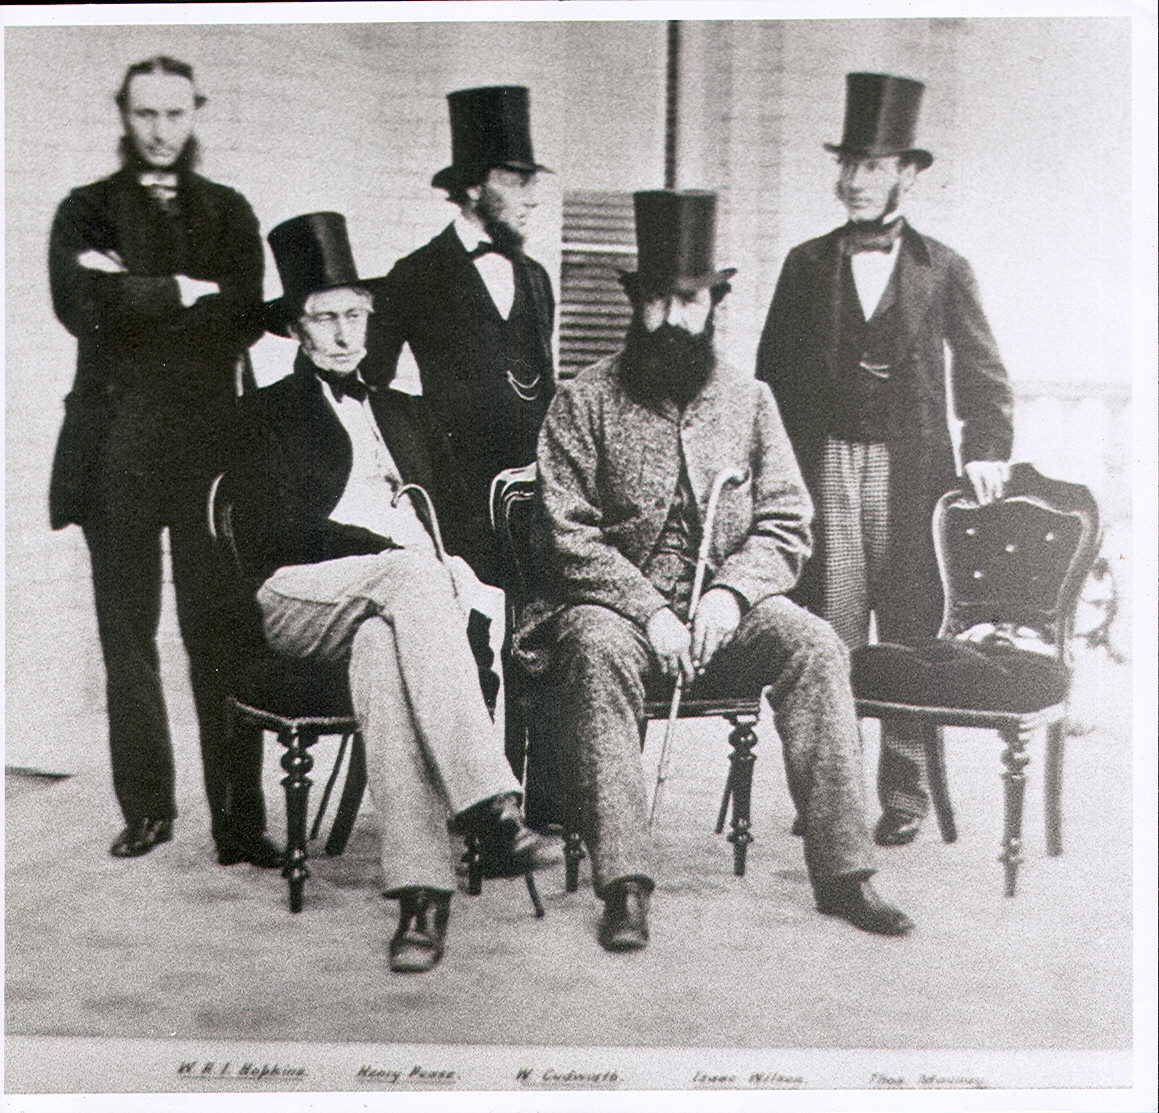 a group of men in top hats pose for a photograph